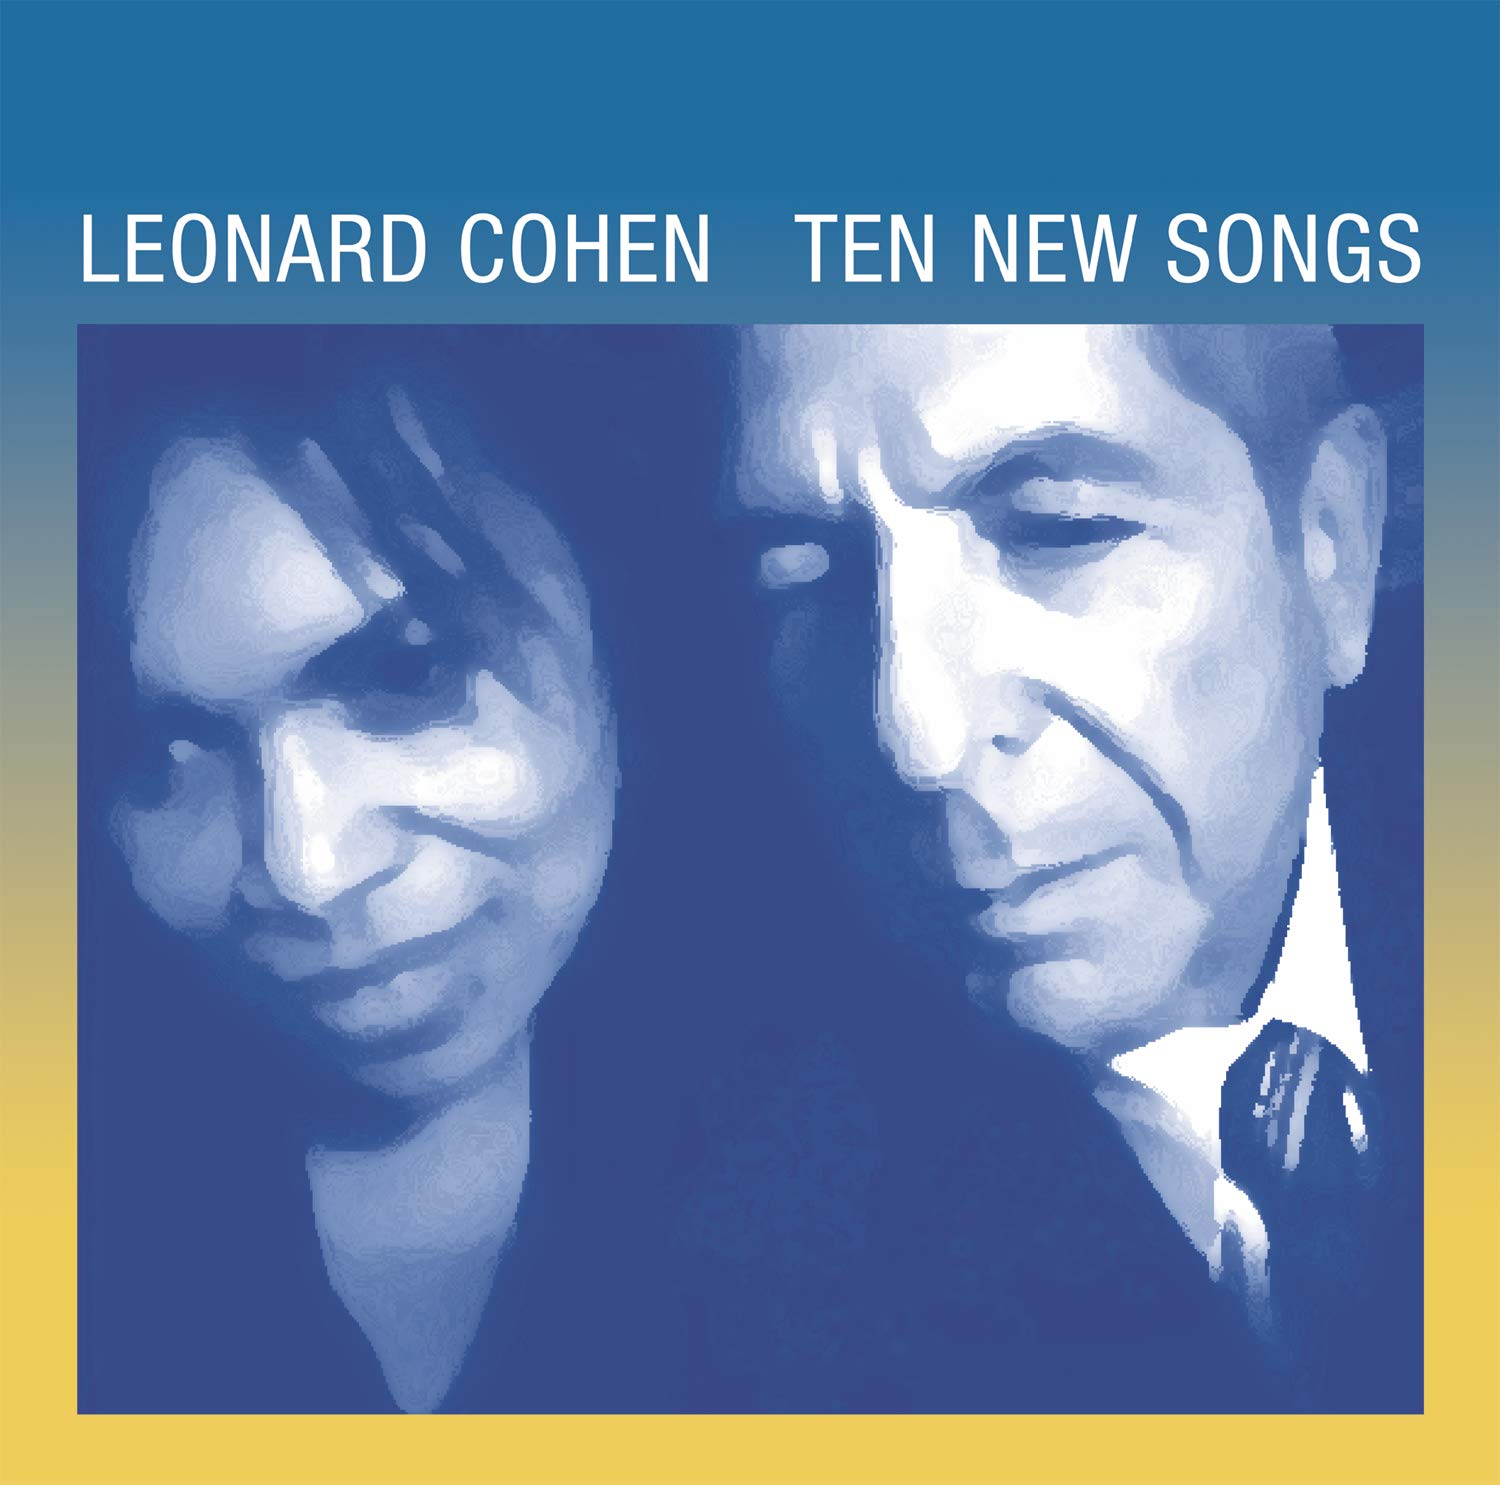 Ten New Songs Tucson Mall Max 84% OFF